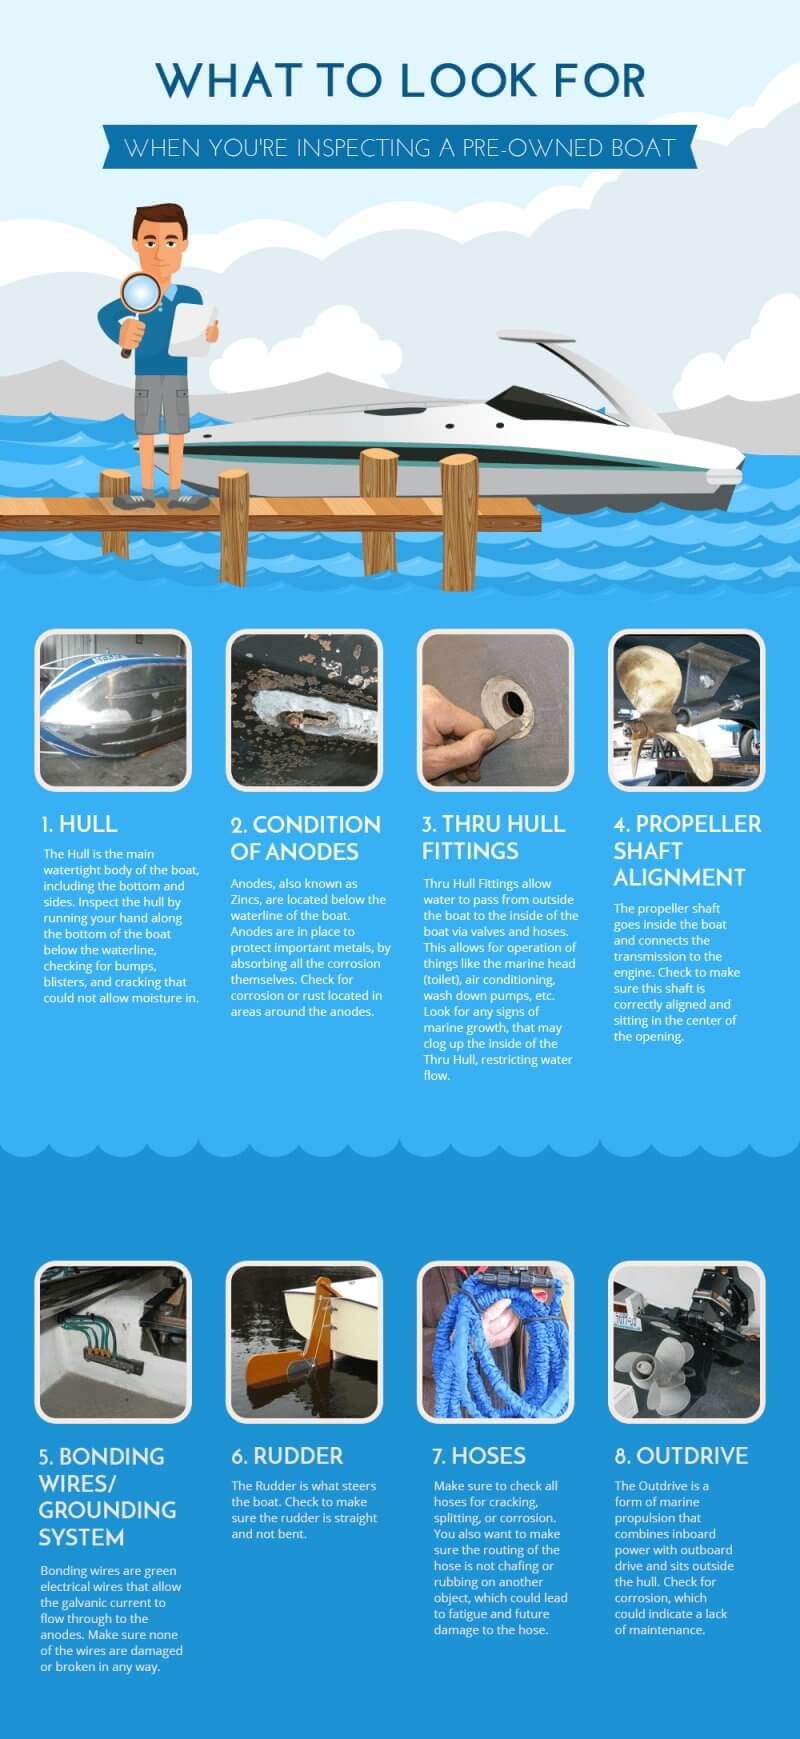 What To Look For When Inspecting A Pre-Owned Boat